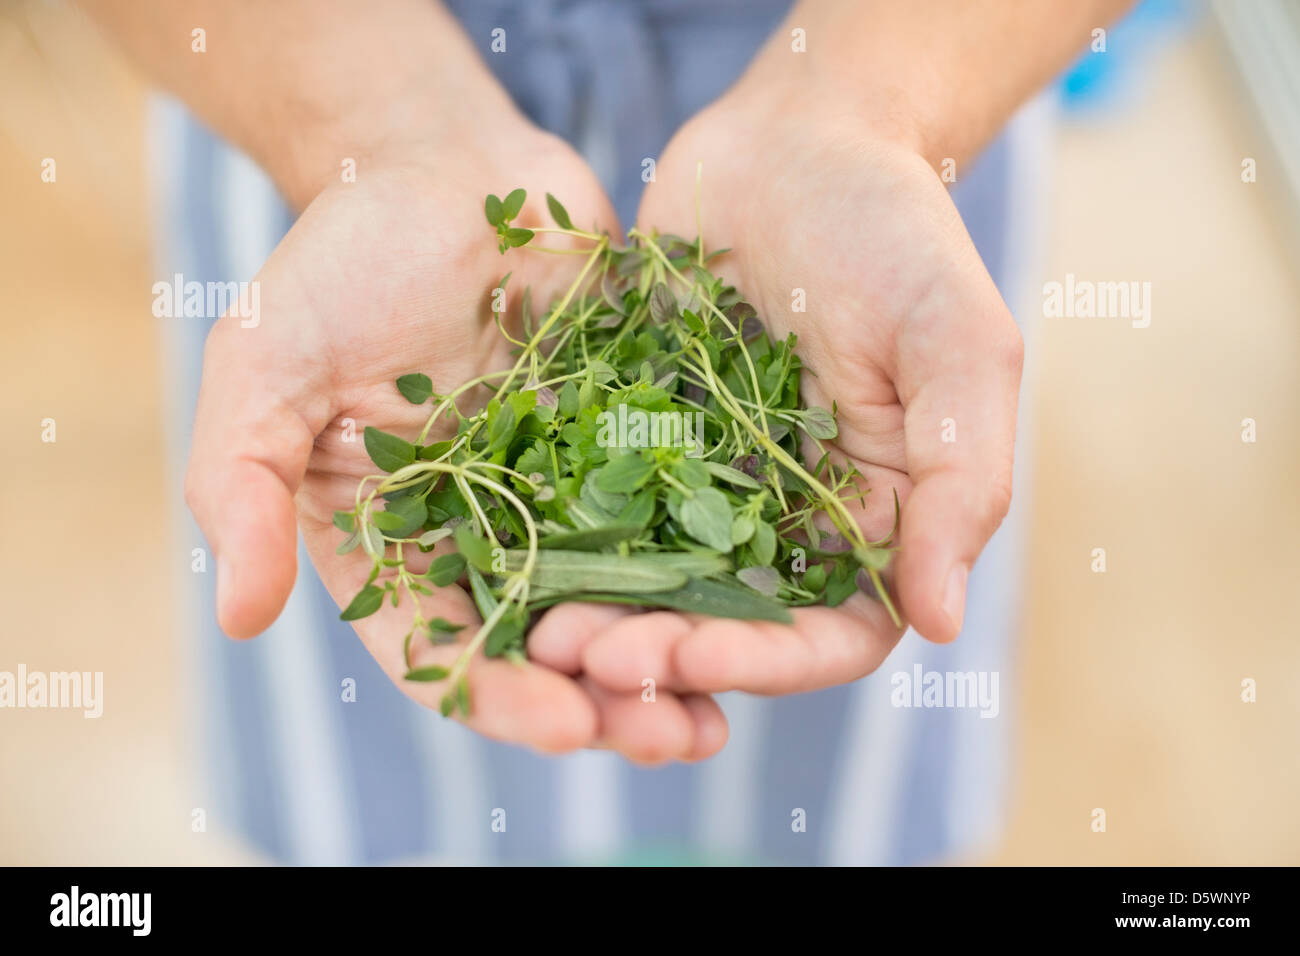 Hands holding bunch of herbs - Stock Image